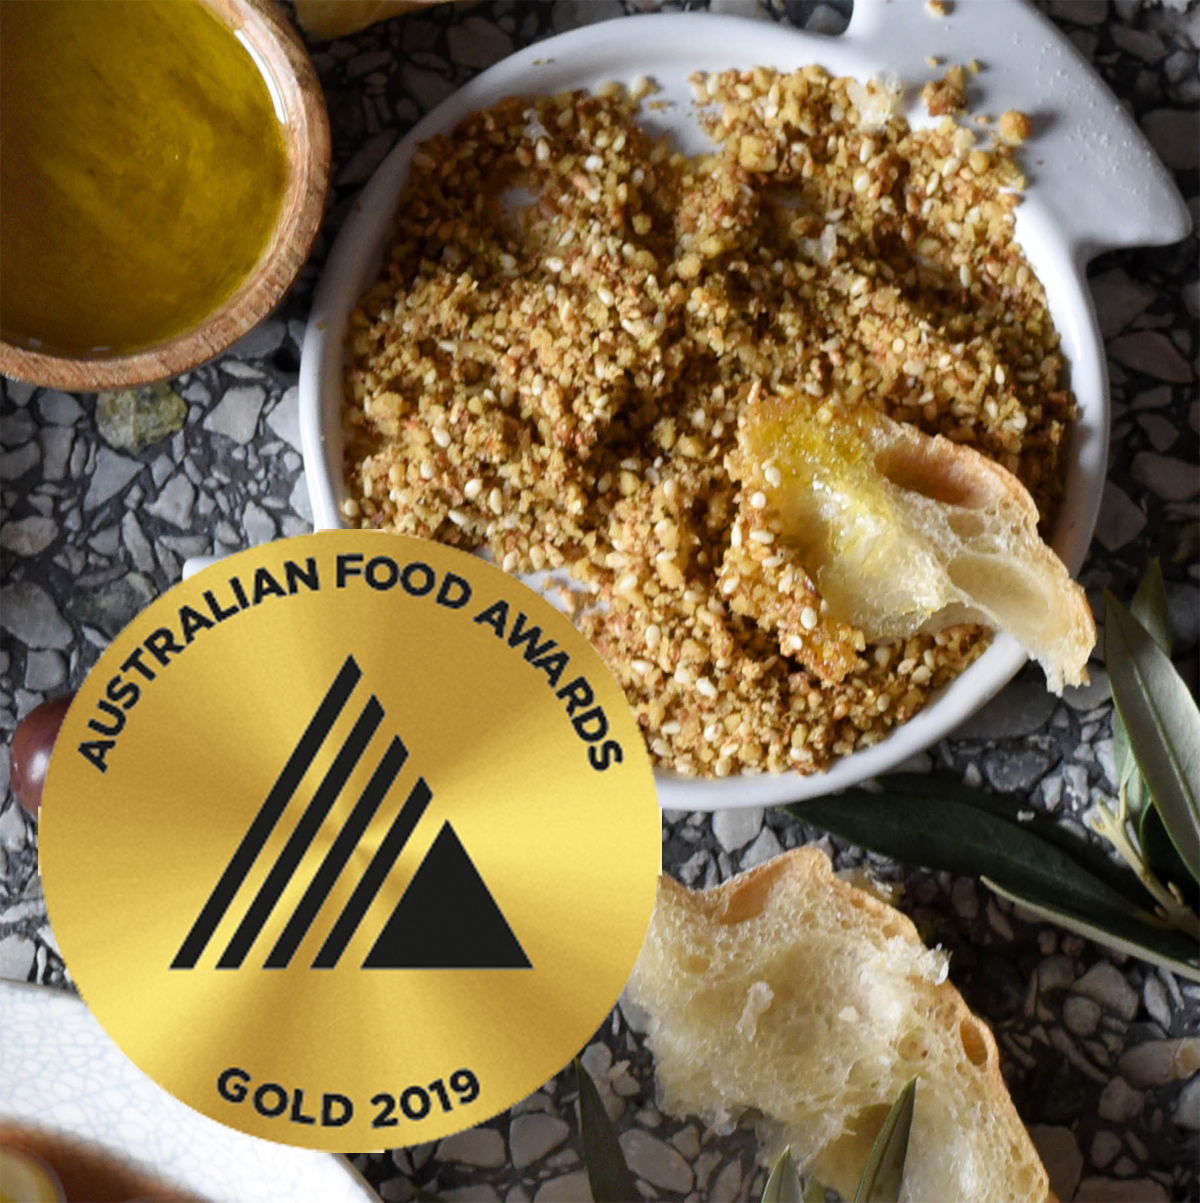 Gold at Australian Food Awards